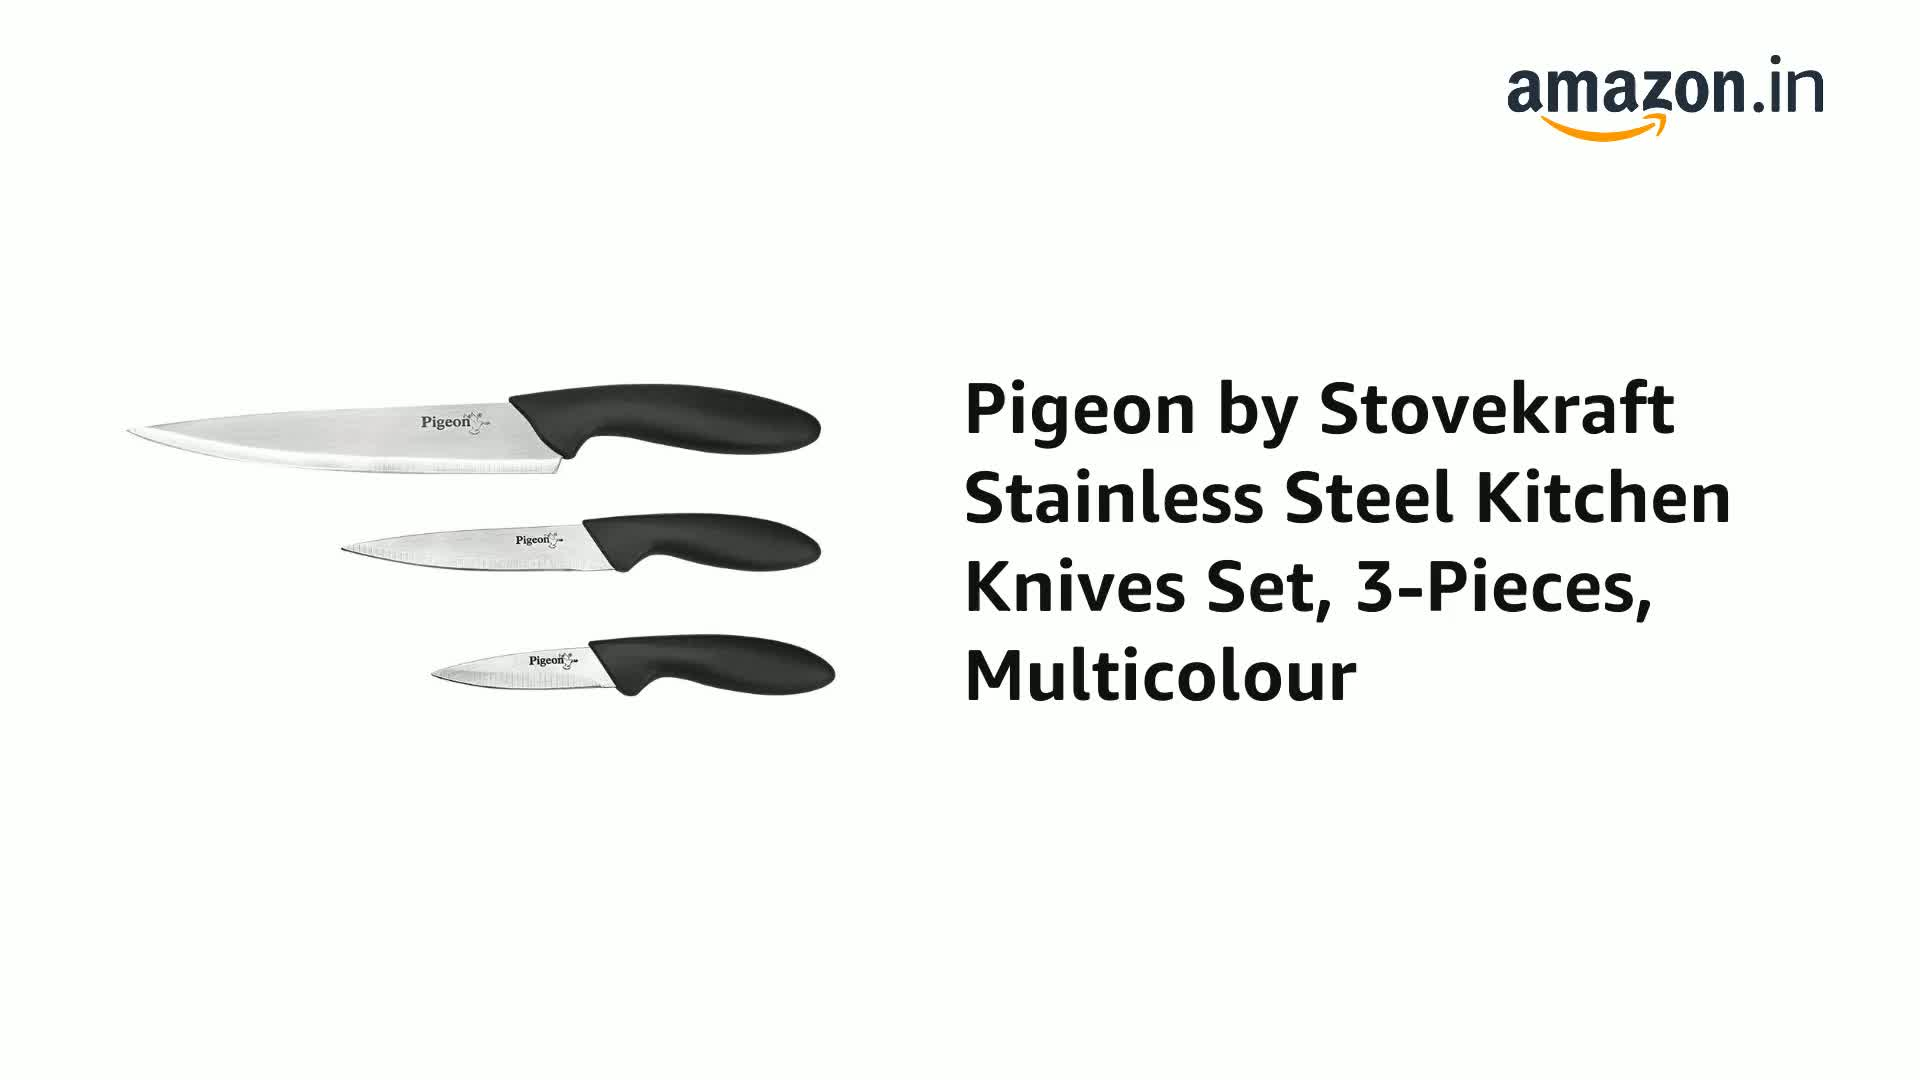 Pigeon-by-Stovekraft-Stainless-Steel-Kitchen-Knives-Set-3-Pieces-Multicolour